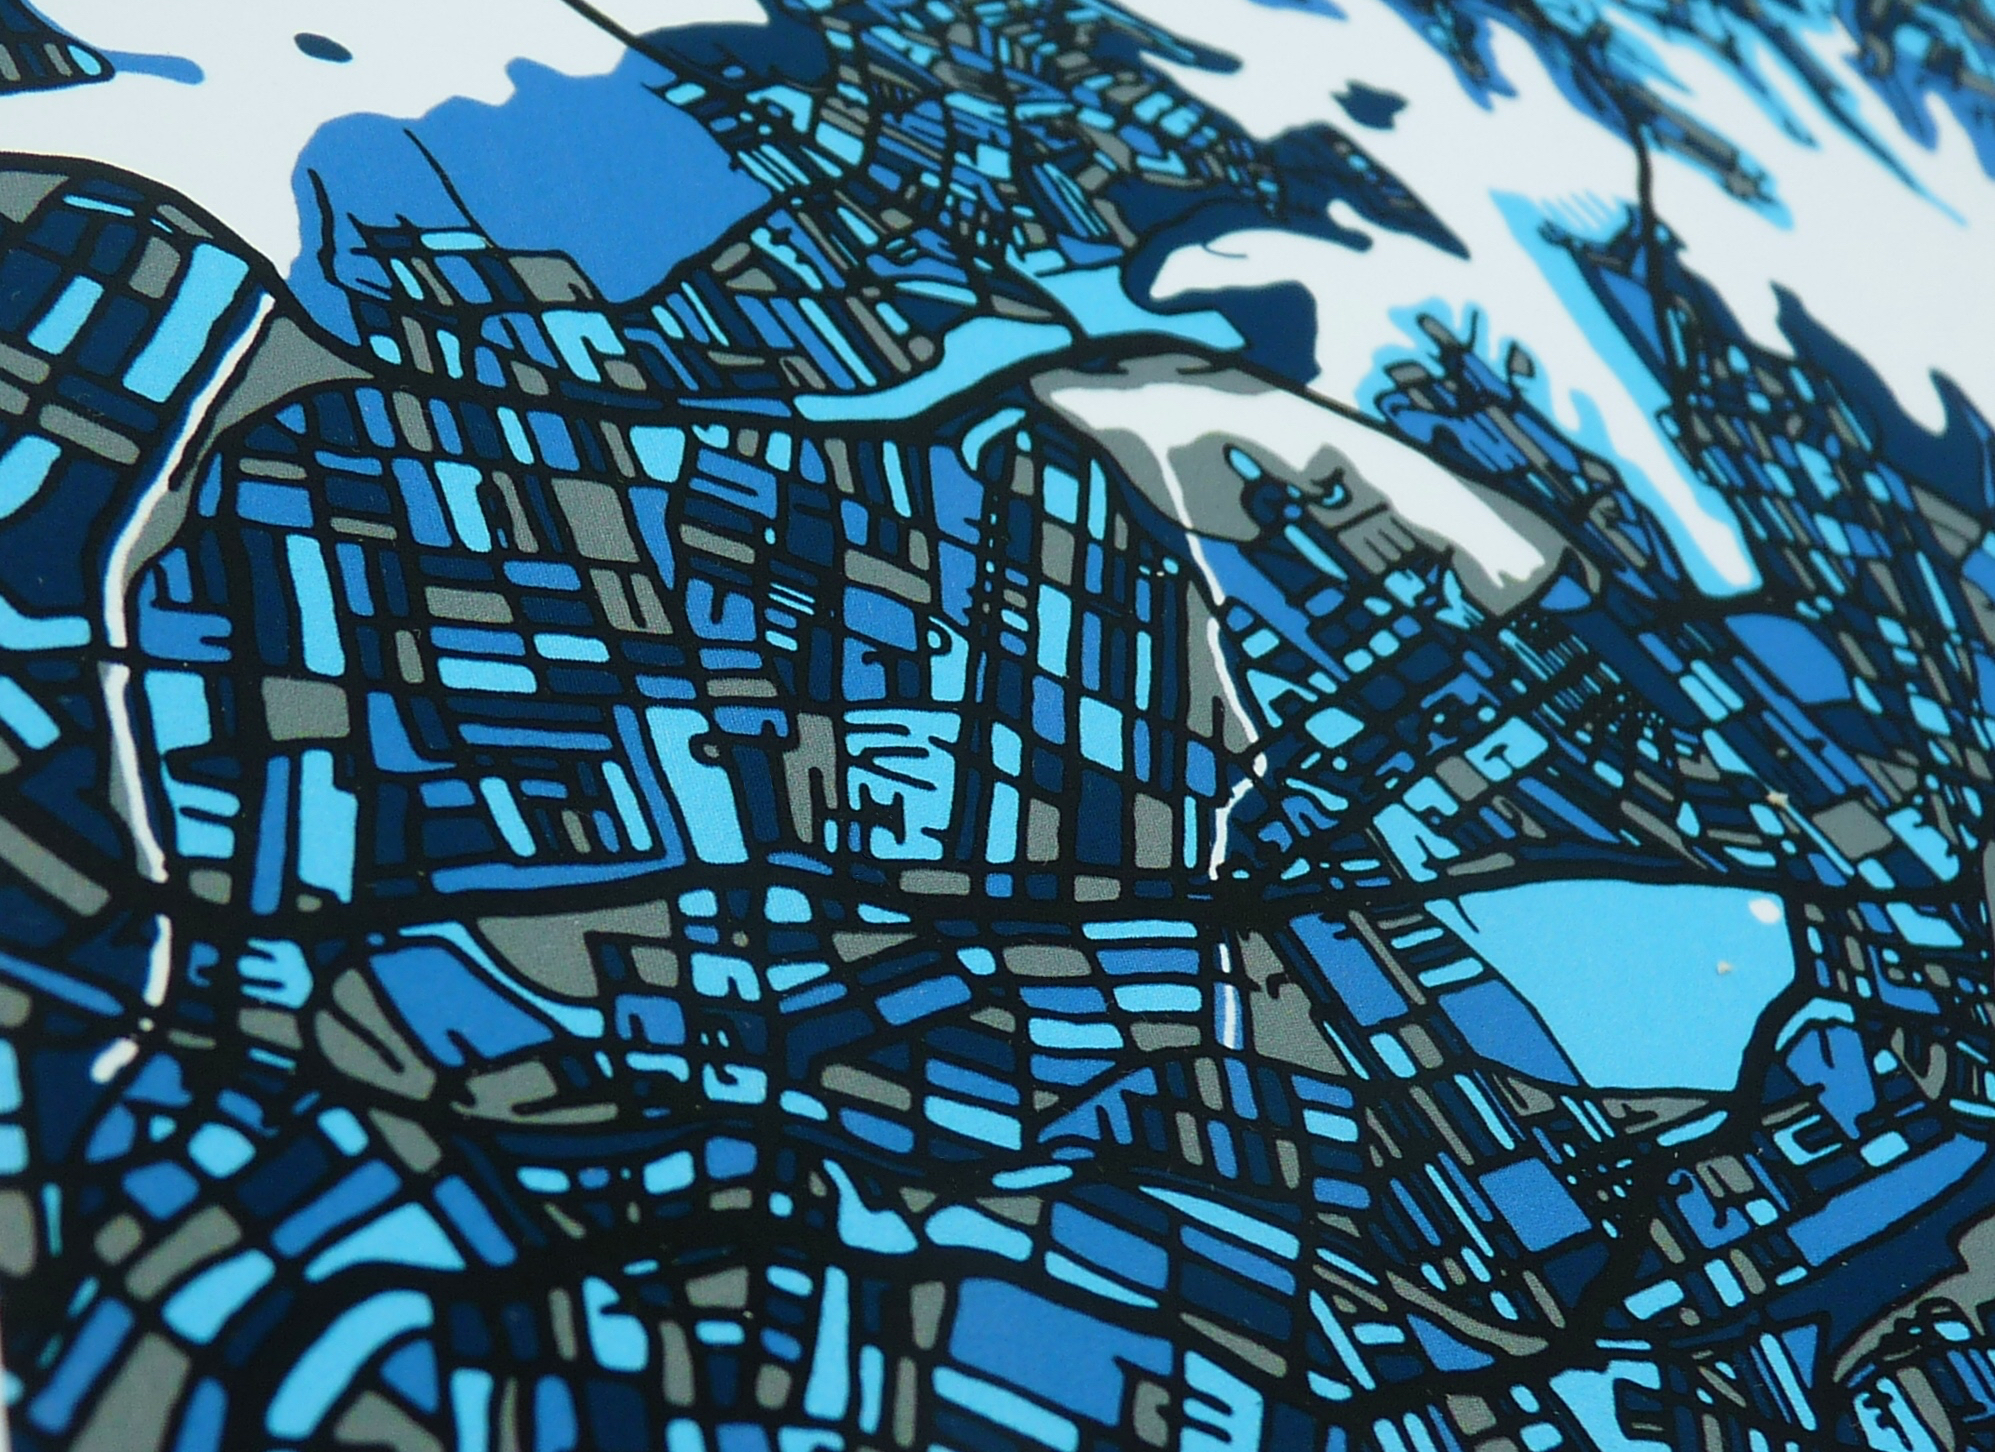 Sydney Art Map - Close Up 1